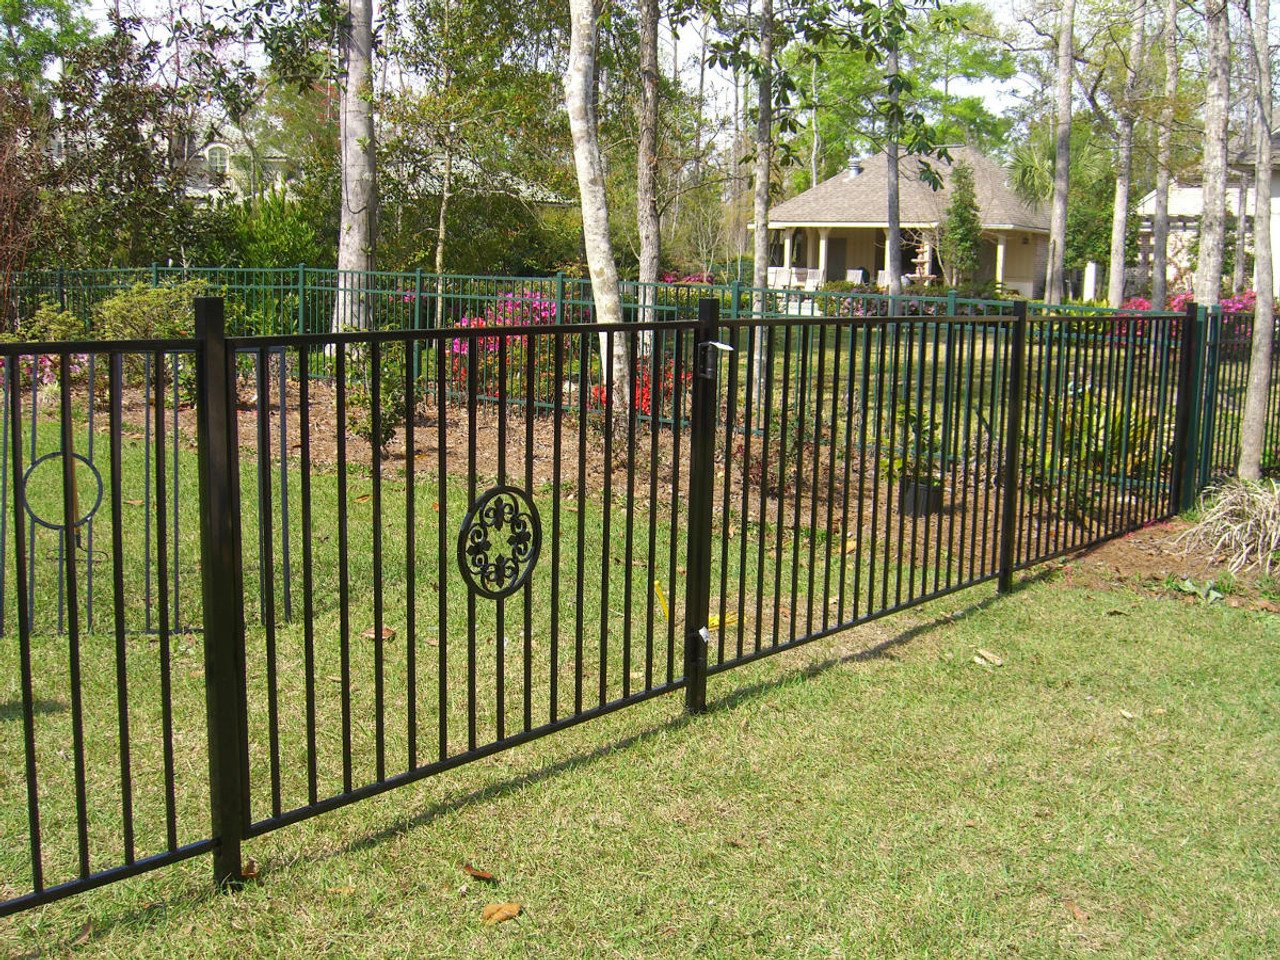 Ornamental Fence Installed with I25-850 Oz-Posts